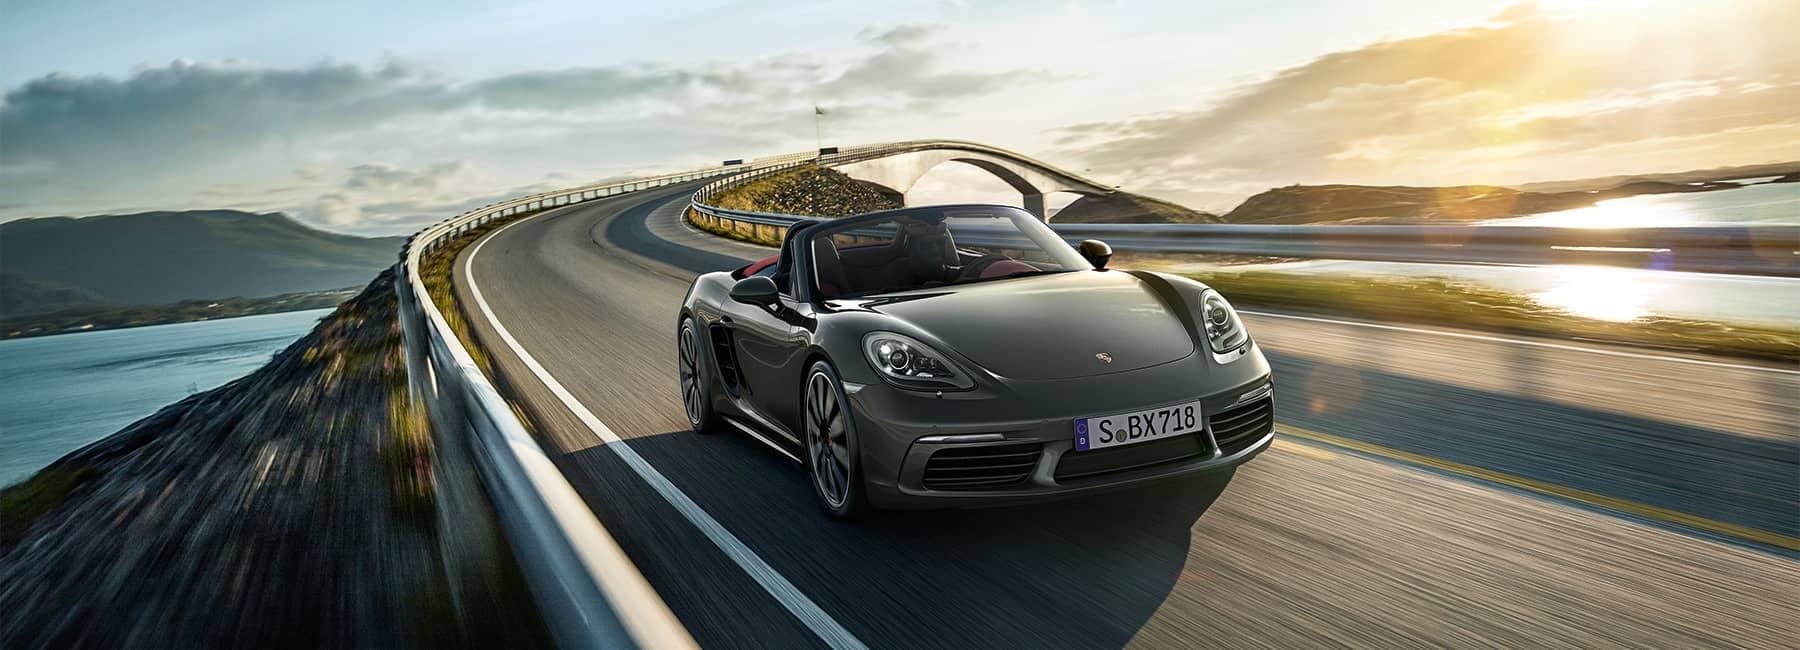 718-Boxster-3